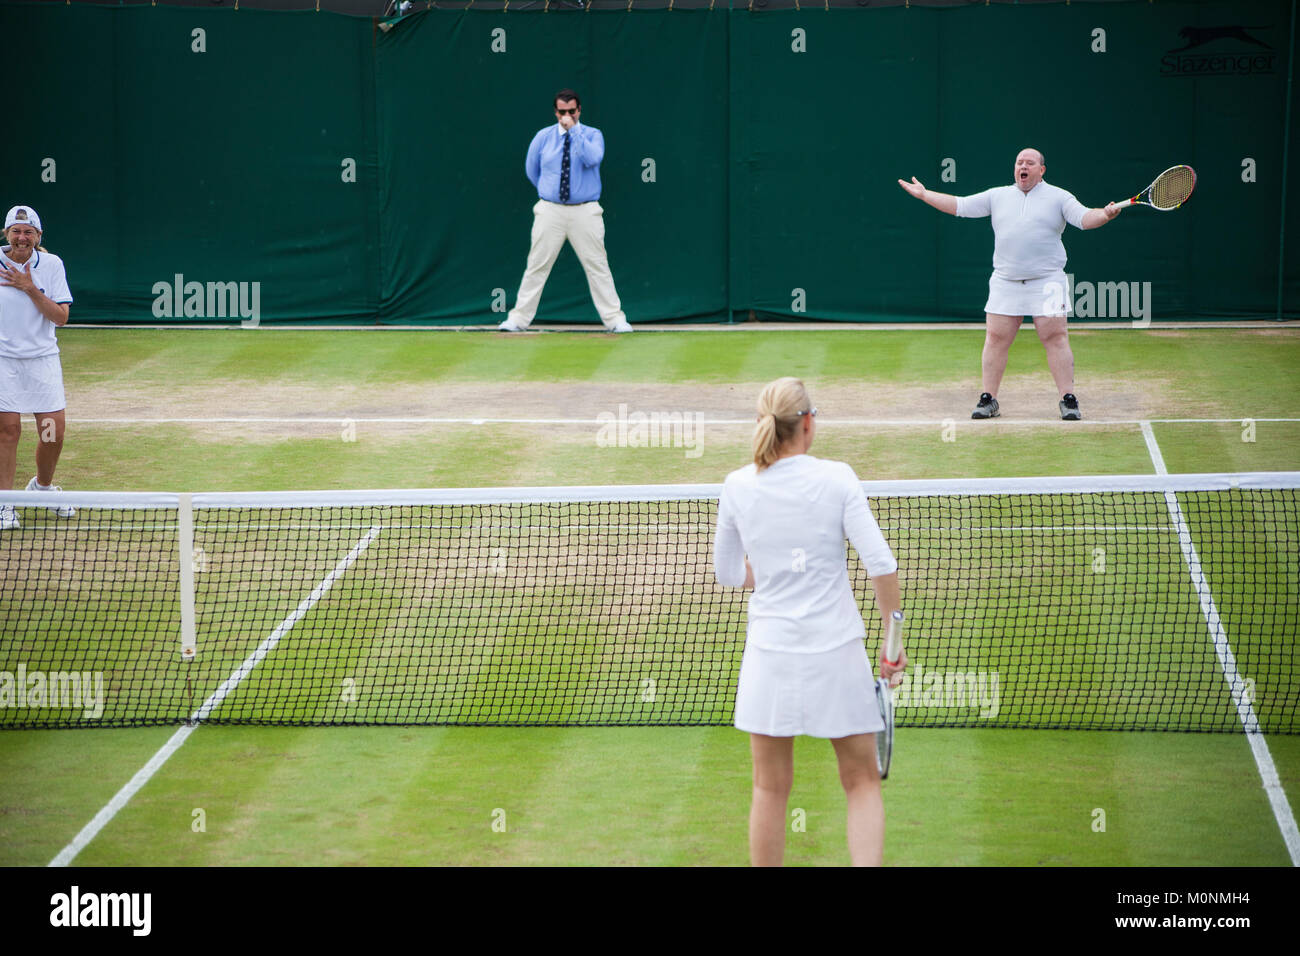 Kim Clijsters had a male fan put on a skirt and play a point at Wimbledon 2017  Ladies' Invitational Doubles - Stock Image